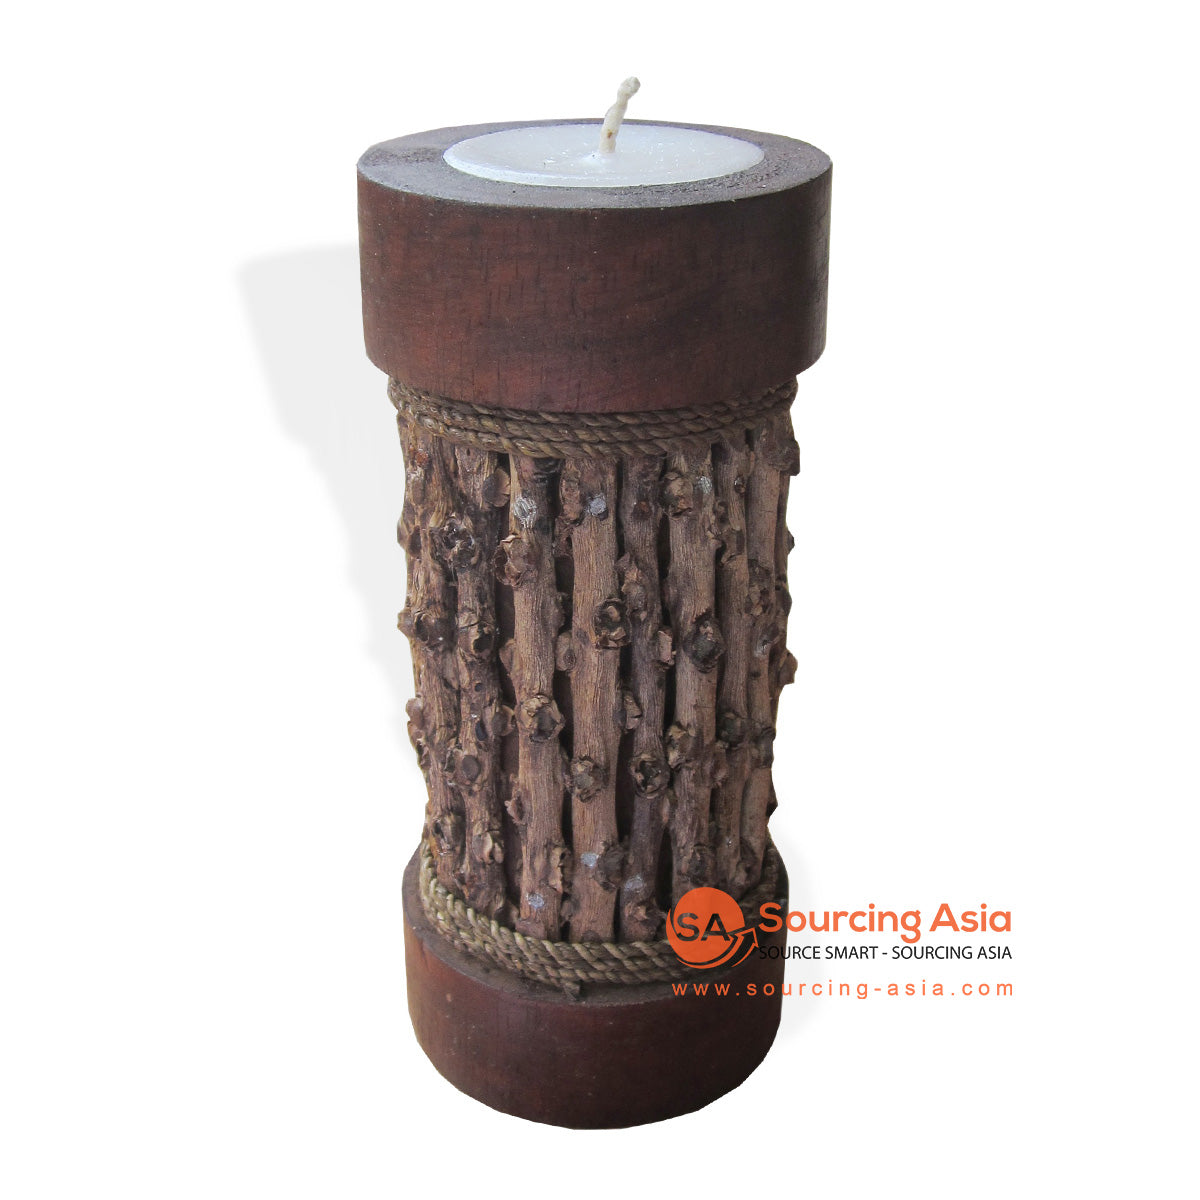 CHWD057DB-20 CANDLE HOLDER